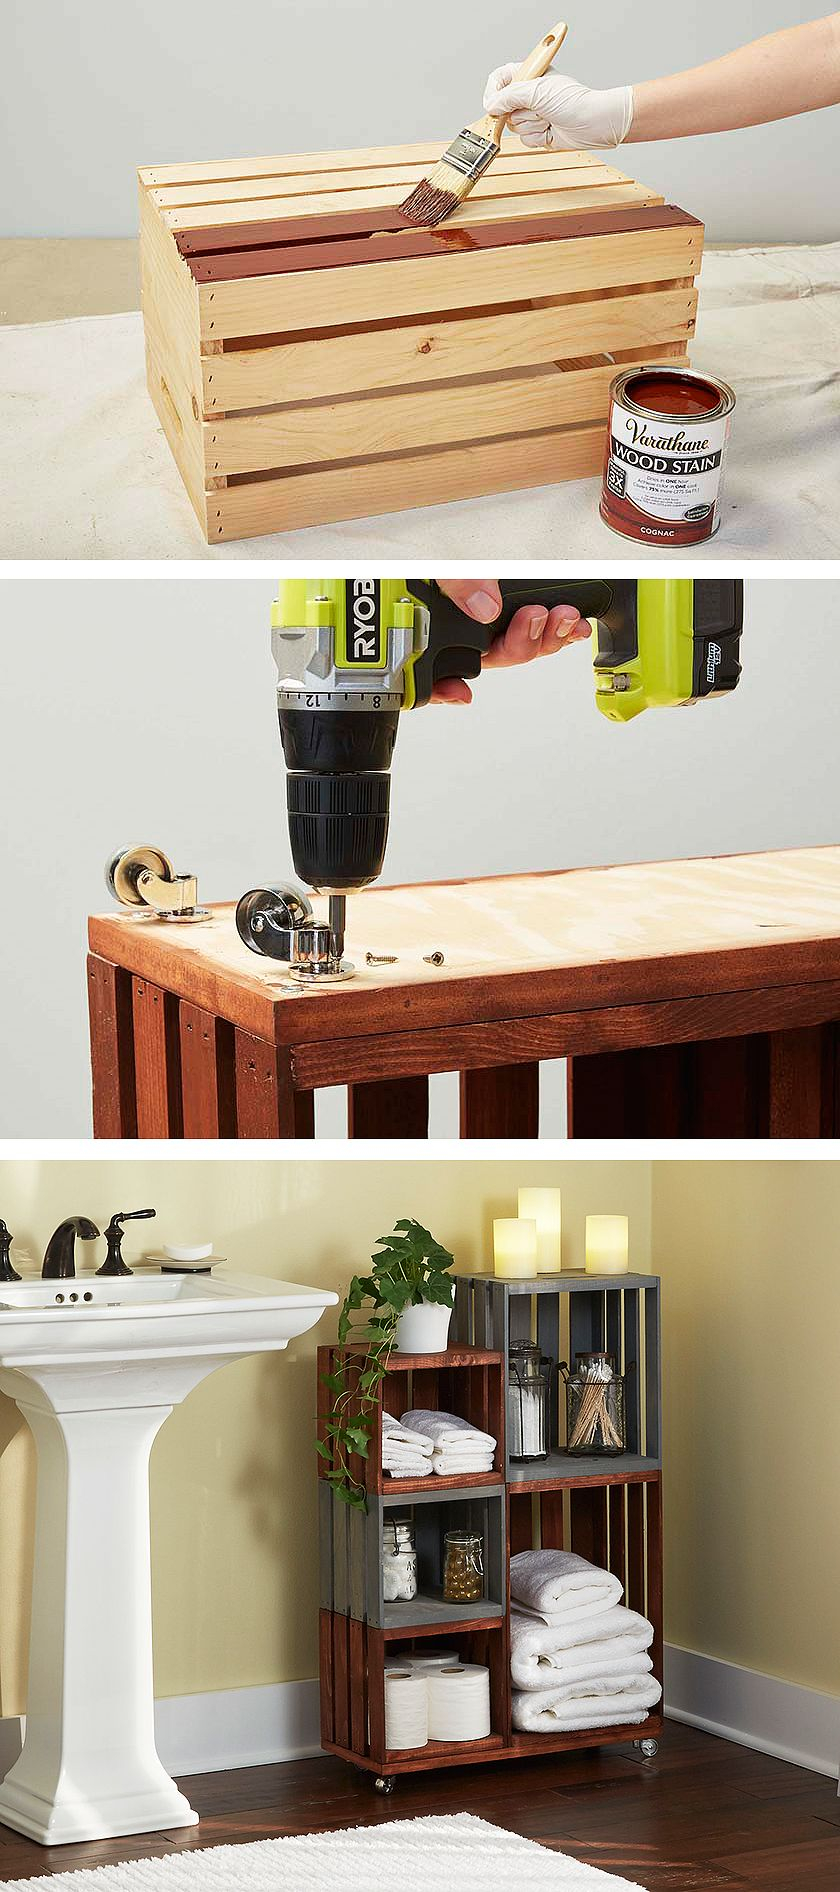 Diy Bathroom Storage Shelves Made From Wooden Crates Easy inside proportions 840 X 1892